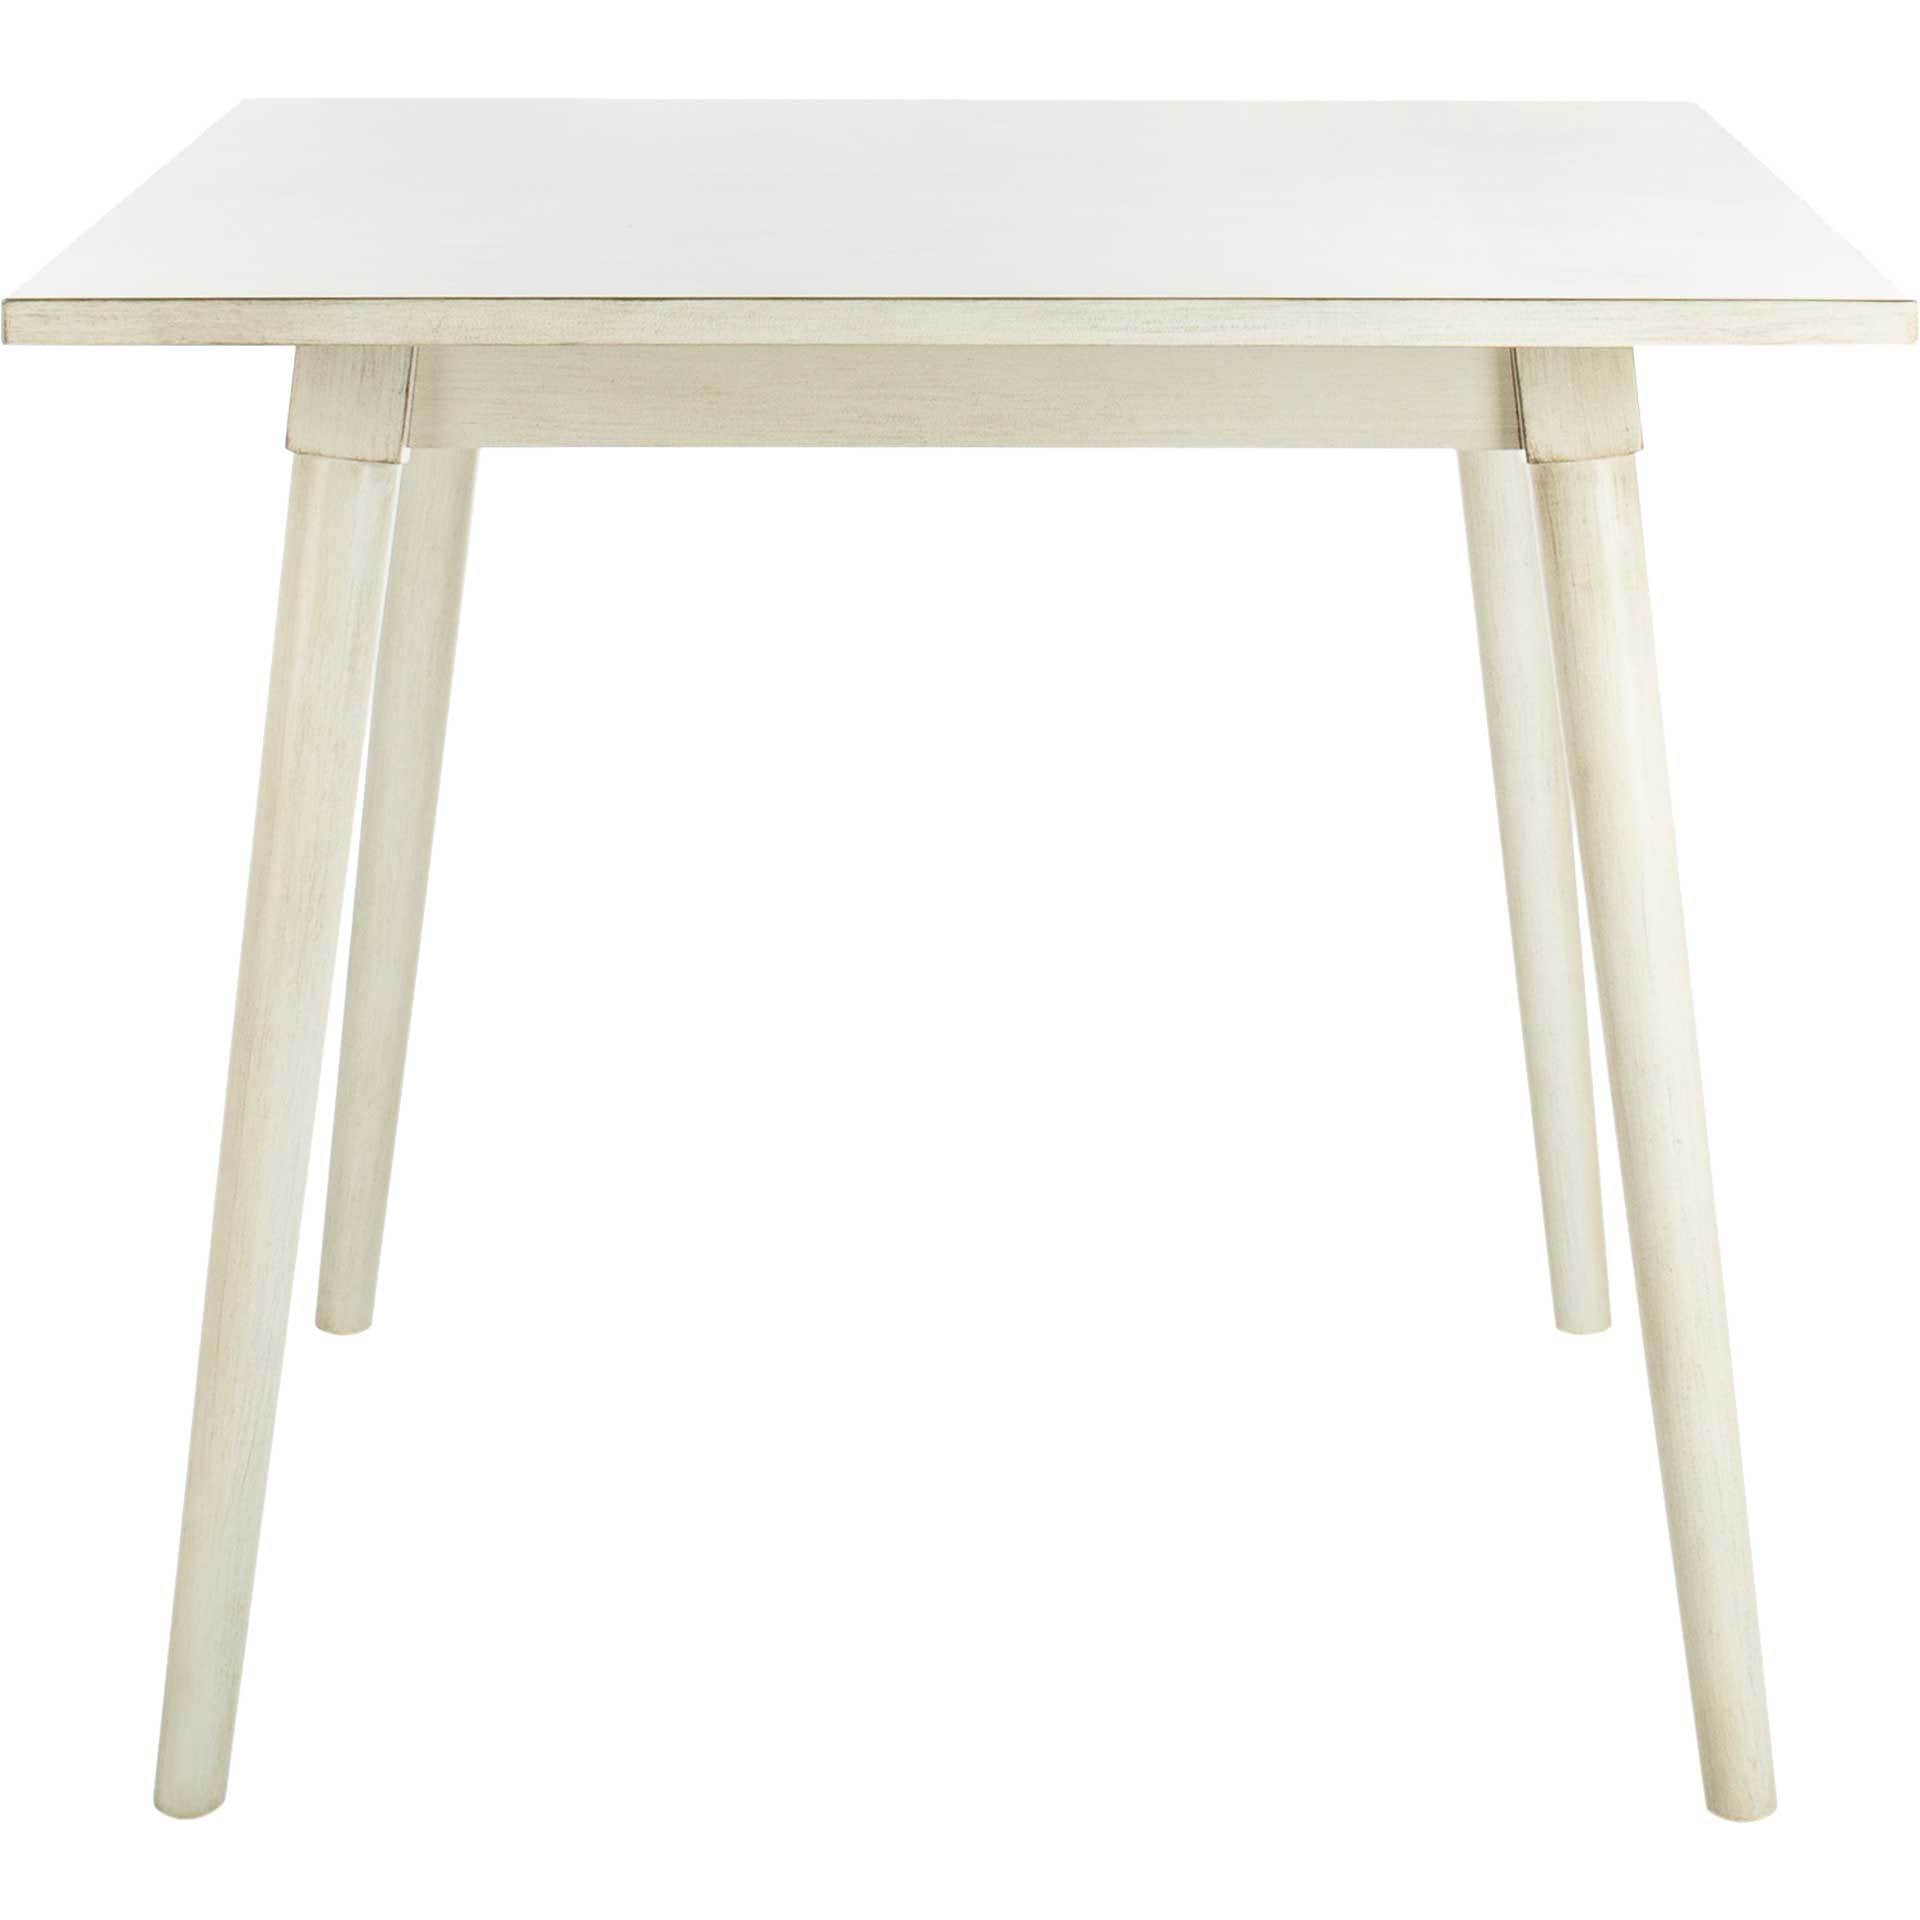 Sibel Square Dining Table White